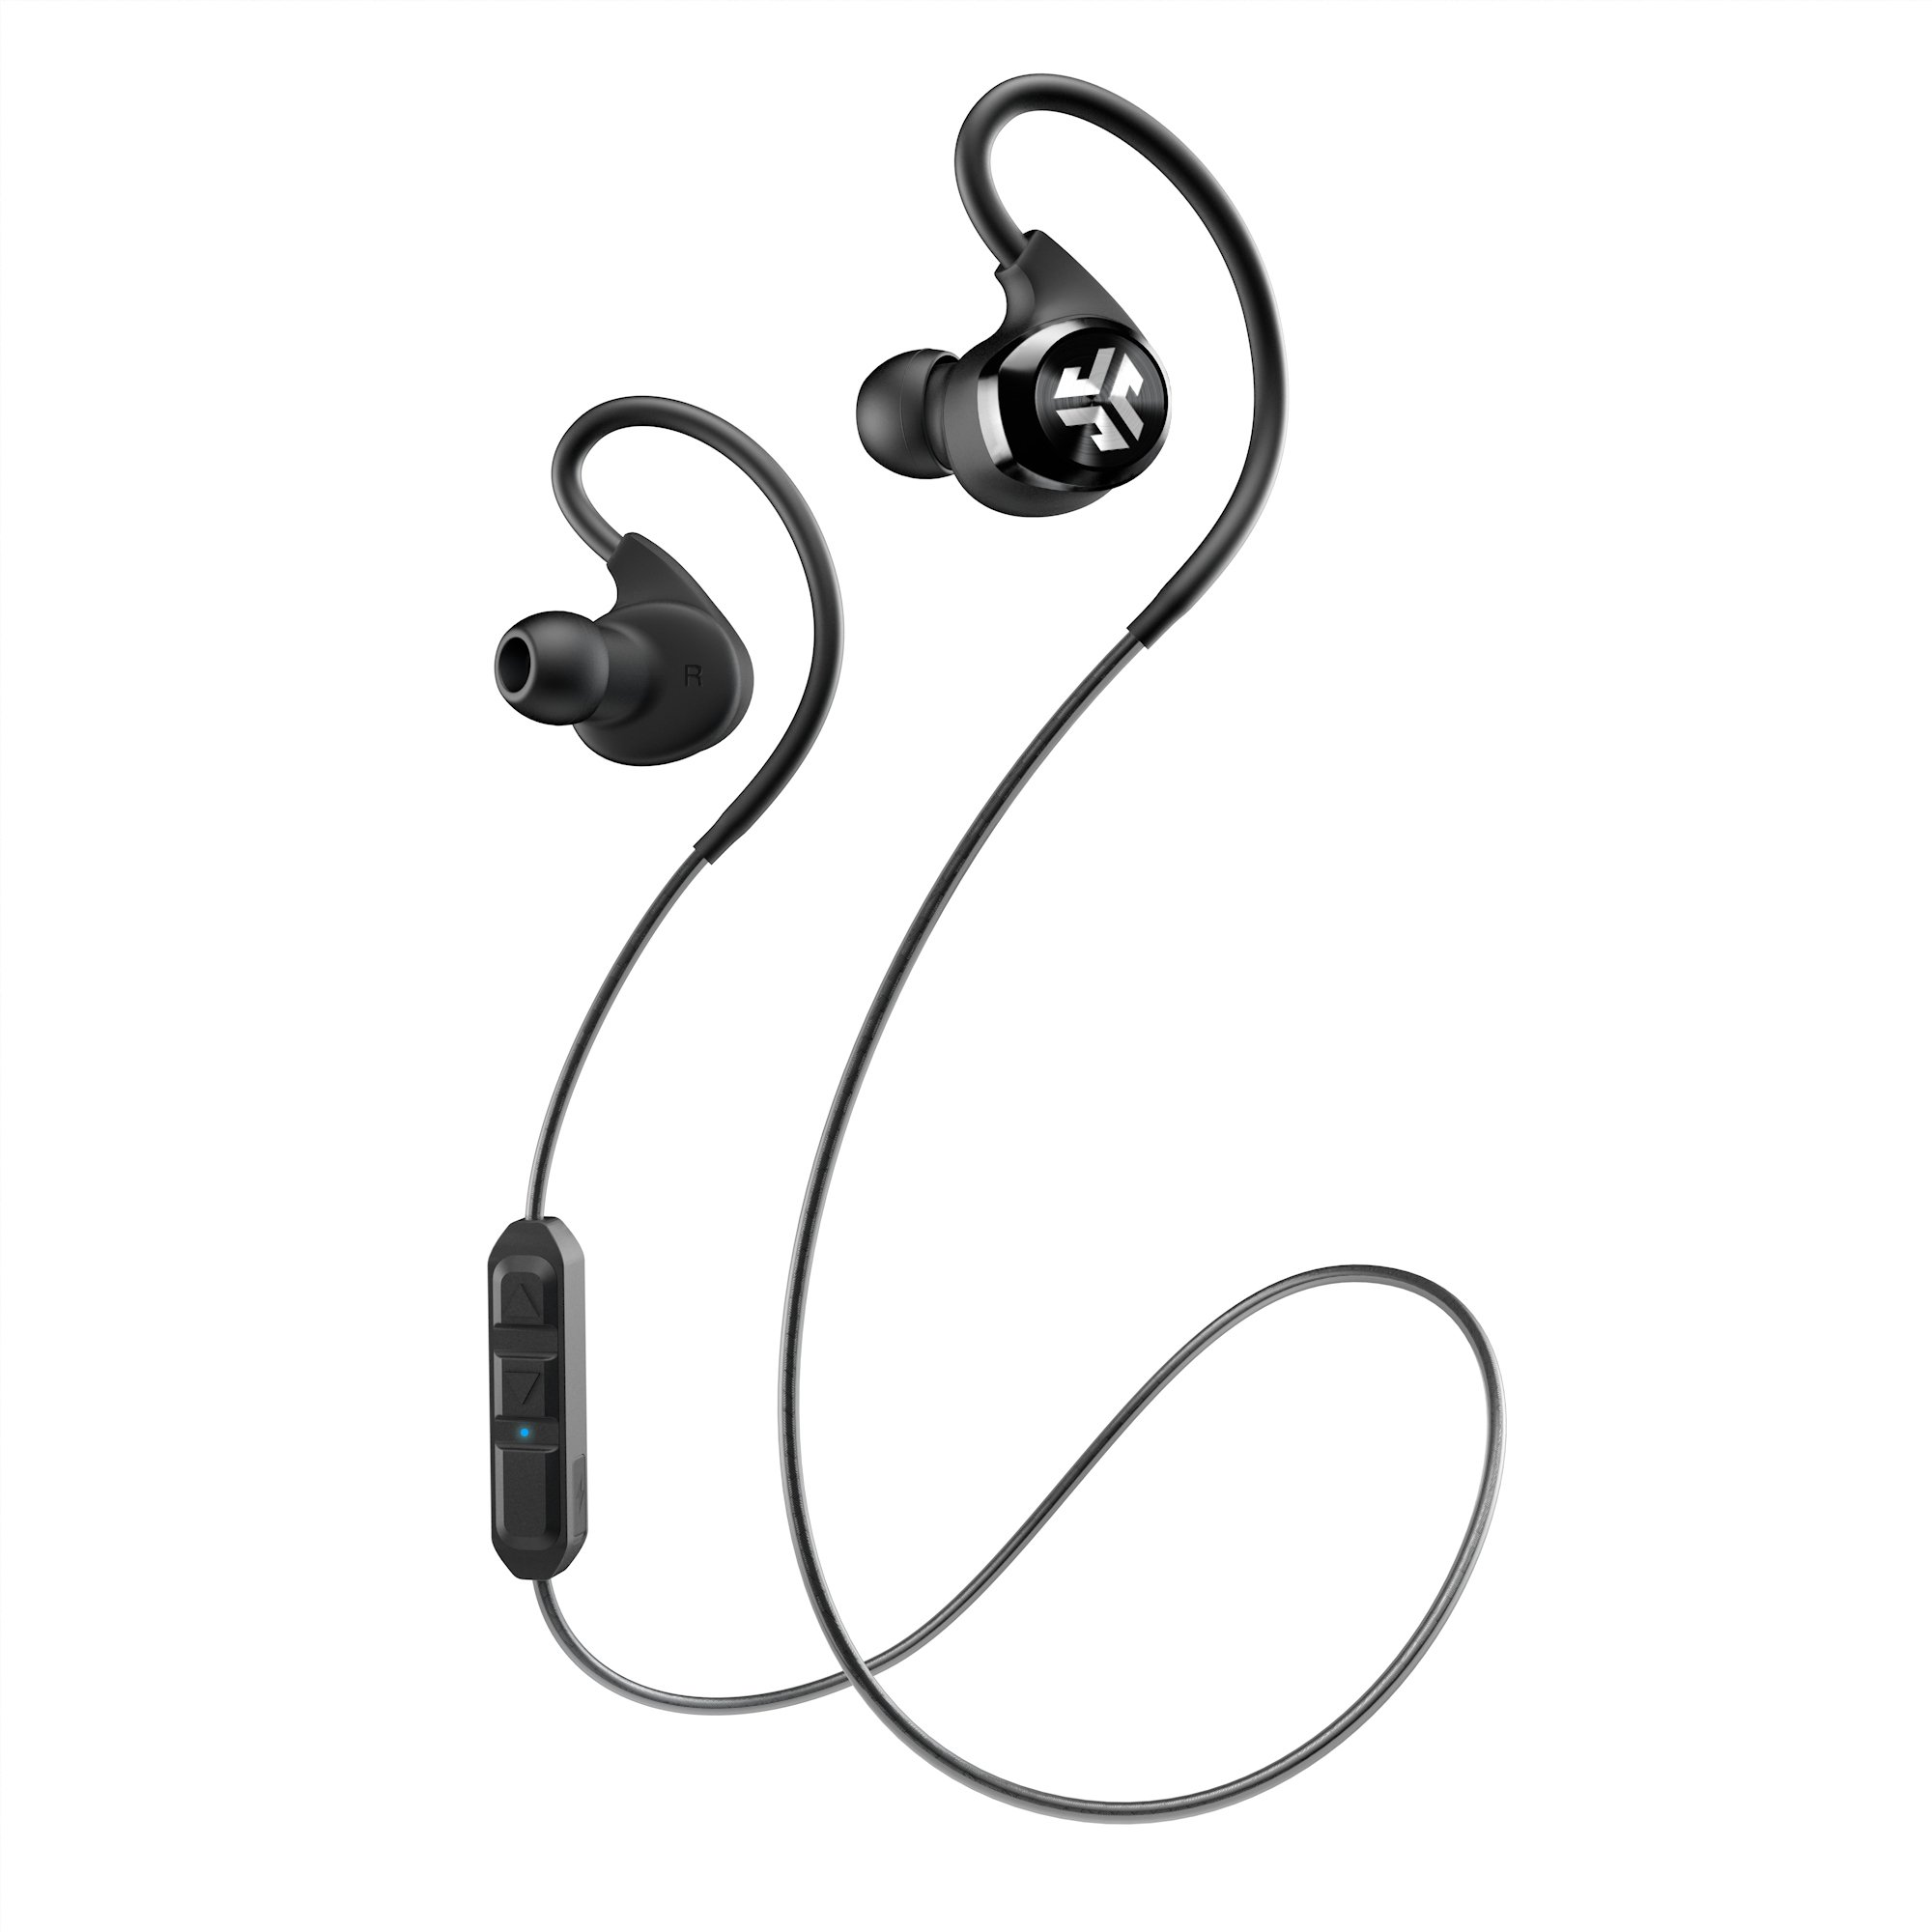 Amazon Com Jlab Audio Epic Bluetooth 4 0 Wireless Sports Earbuds With 10 Hour Battery And Ipx4 Waterproof Rating Black Home Audio Theater